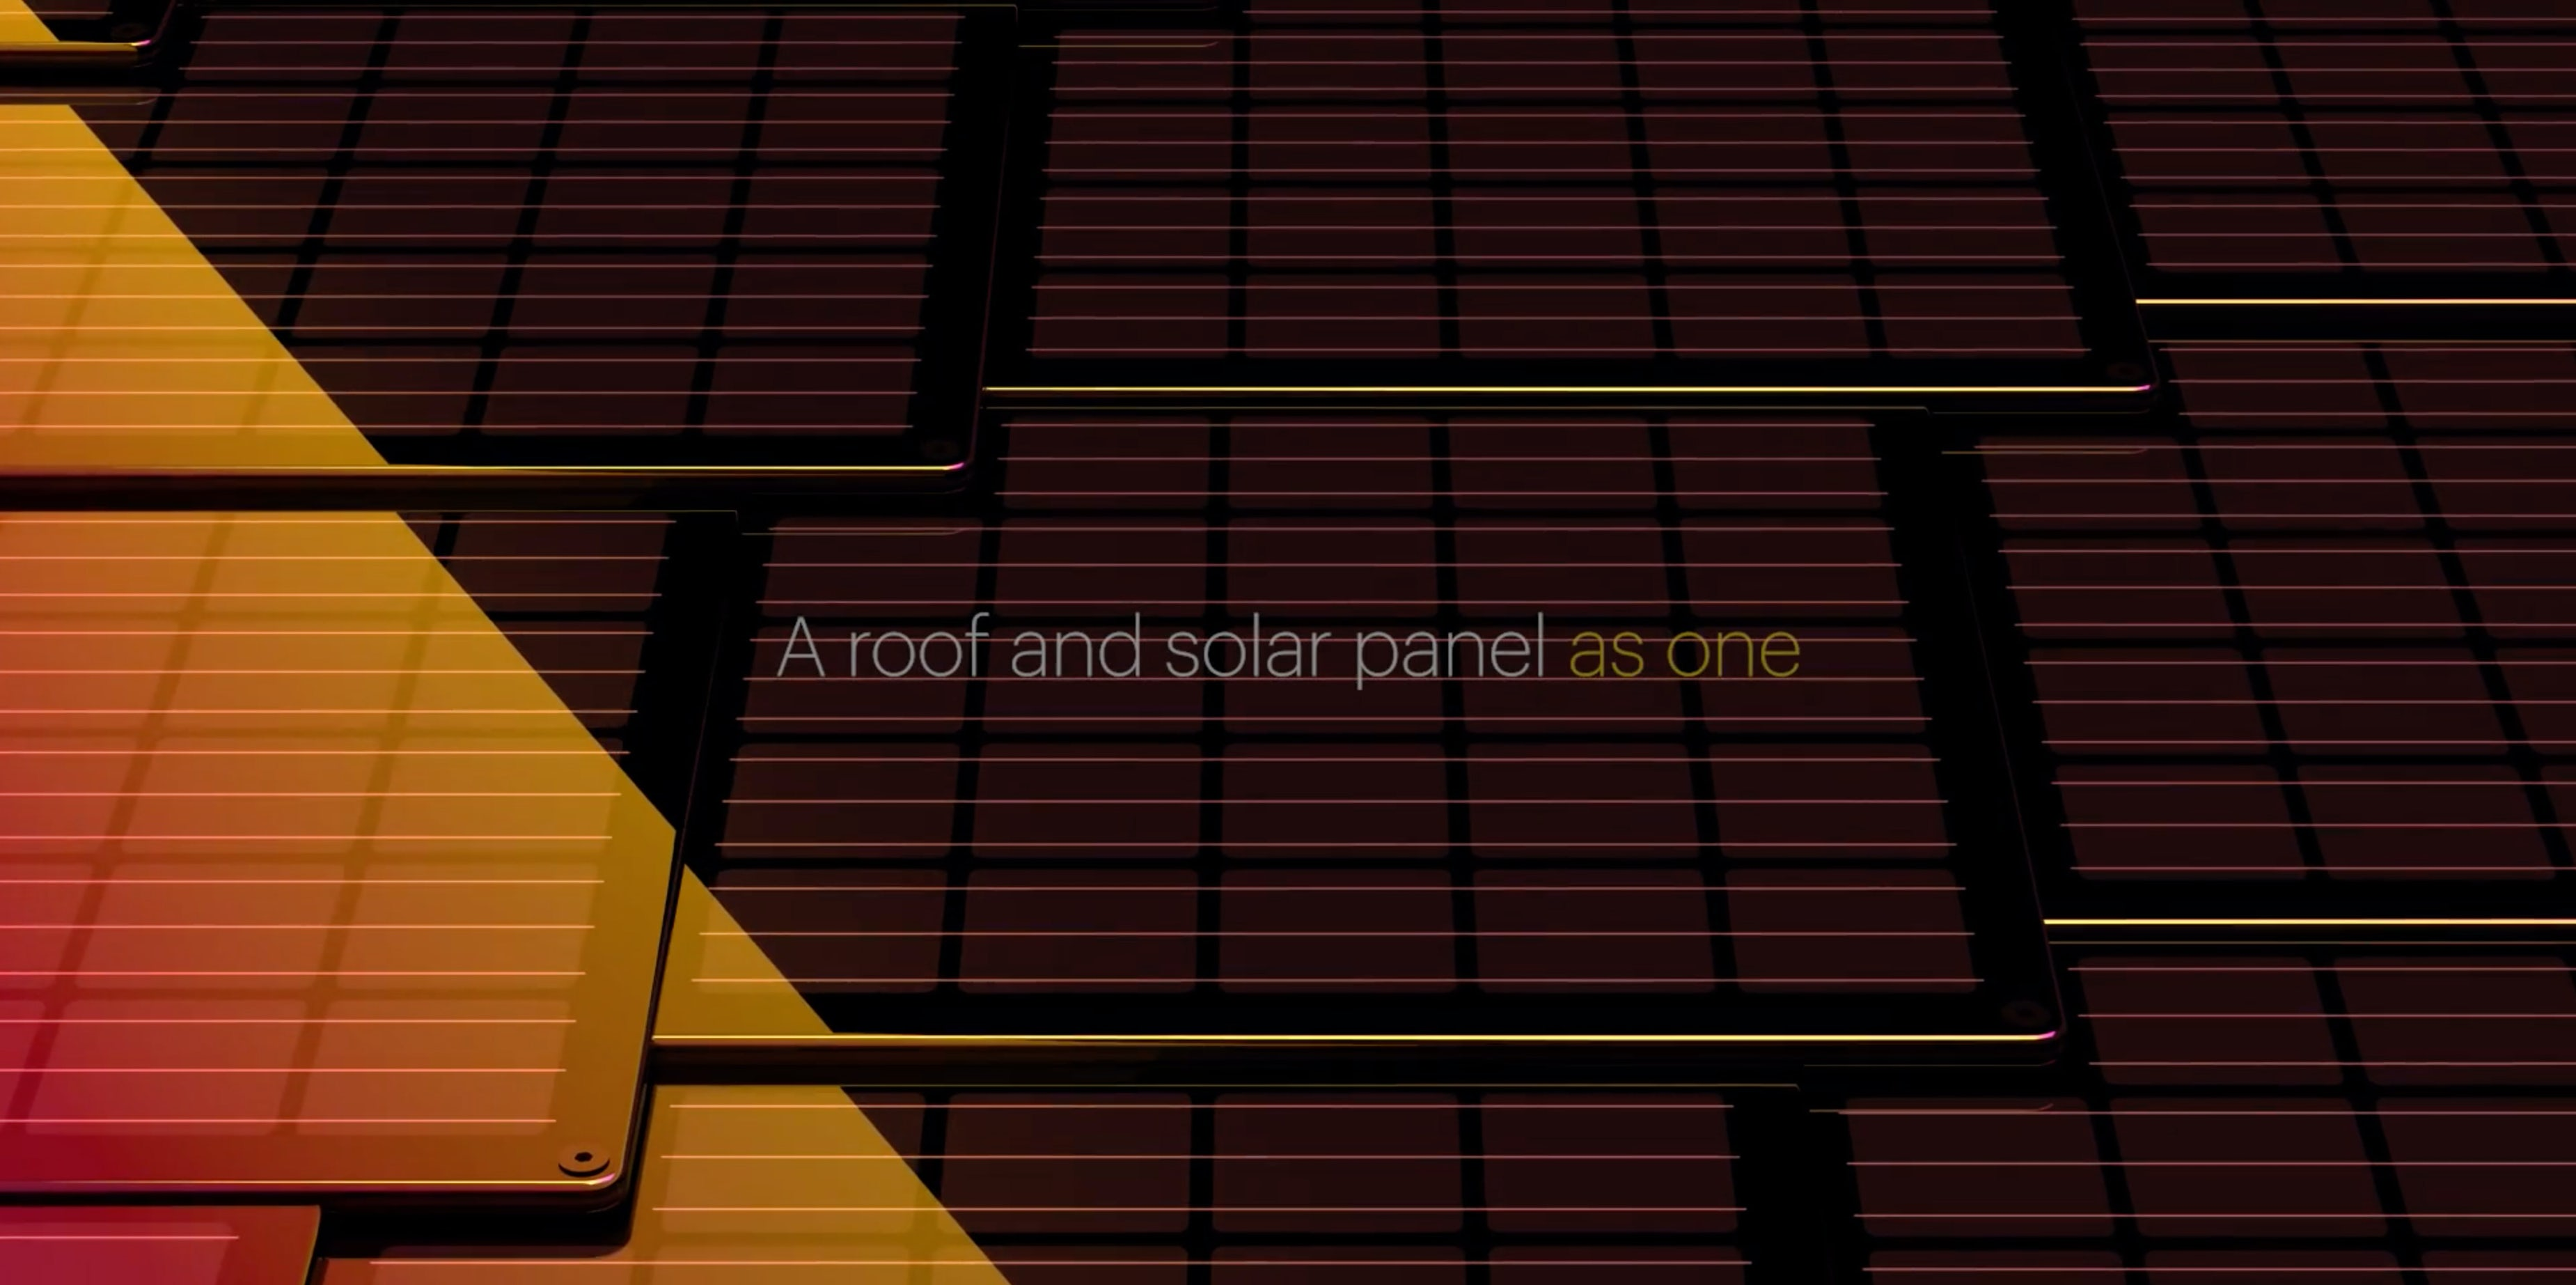 A roof and solar panel as one | Sunstyle USA